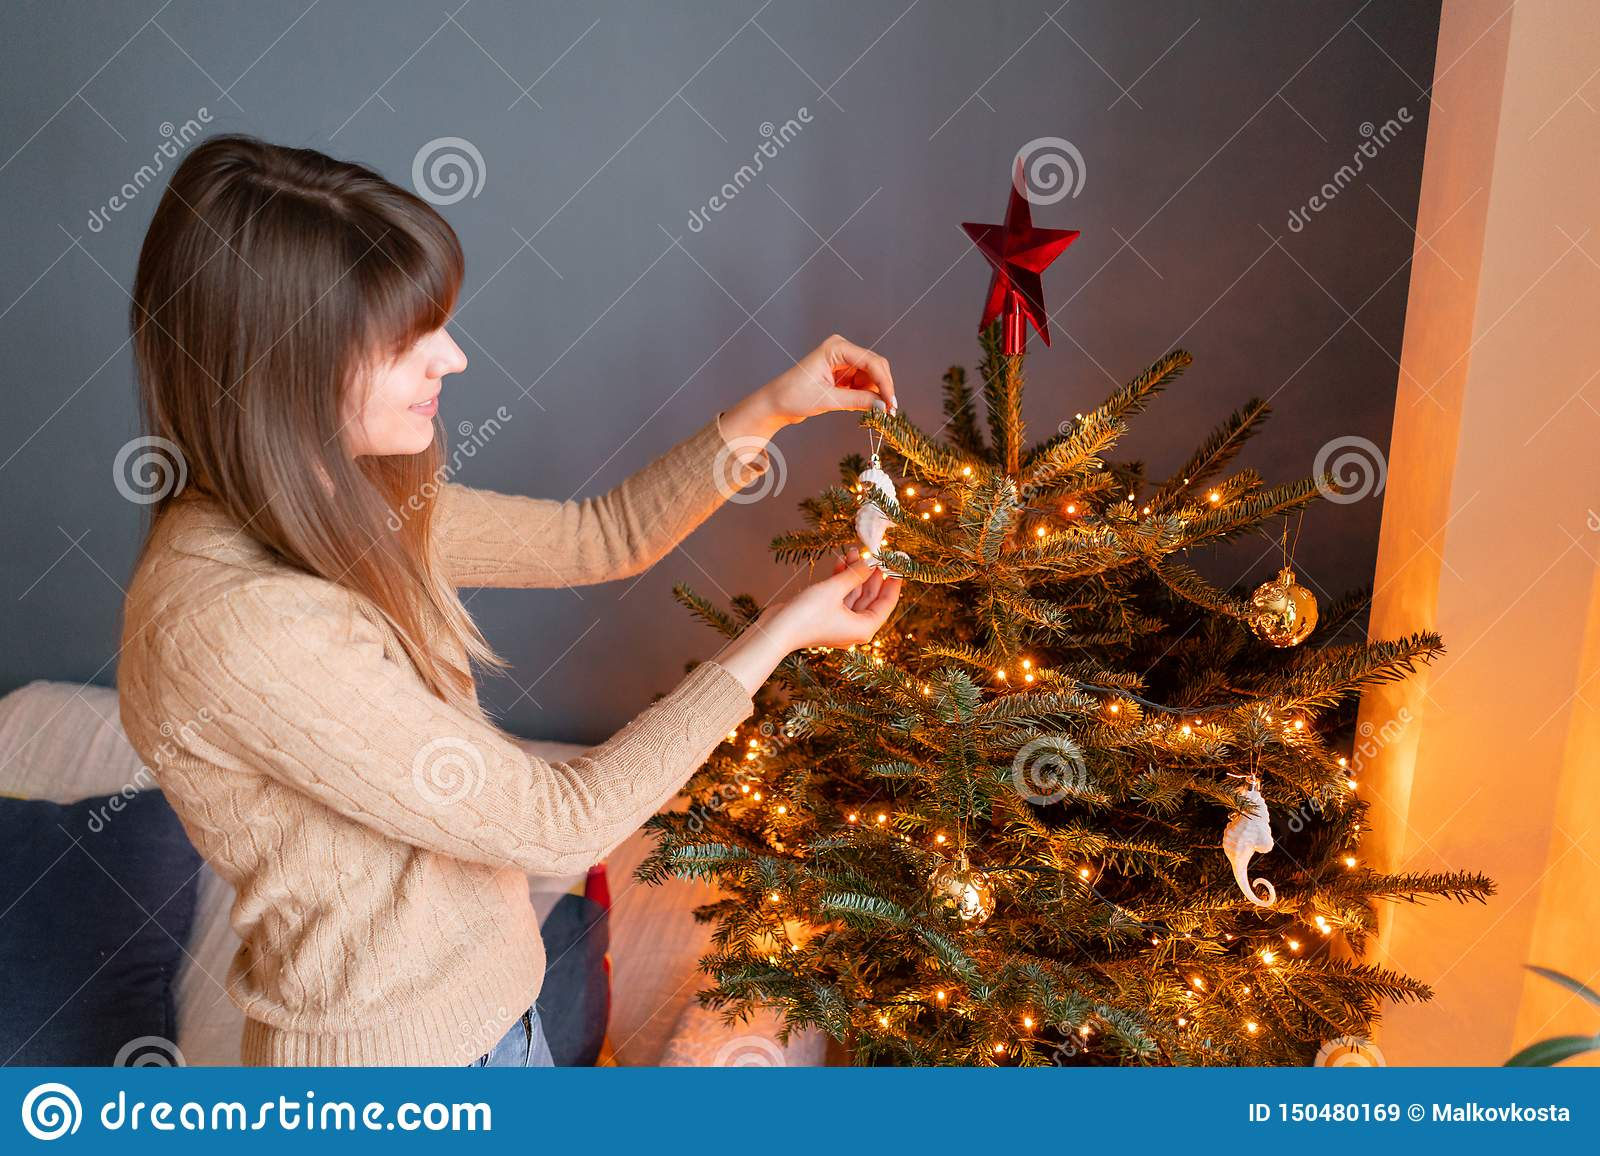 Happy young woman decorating christmas tree at home. Winter holidays in a house interior. Golden and white Christmas